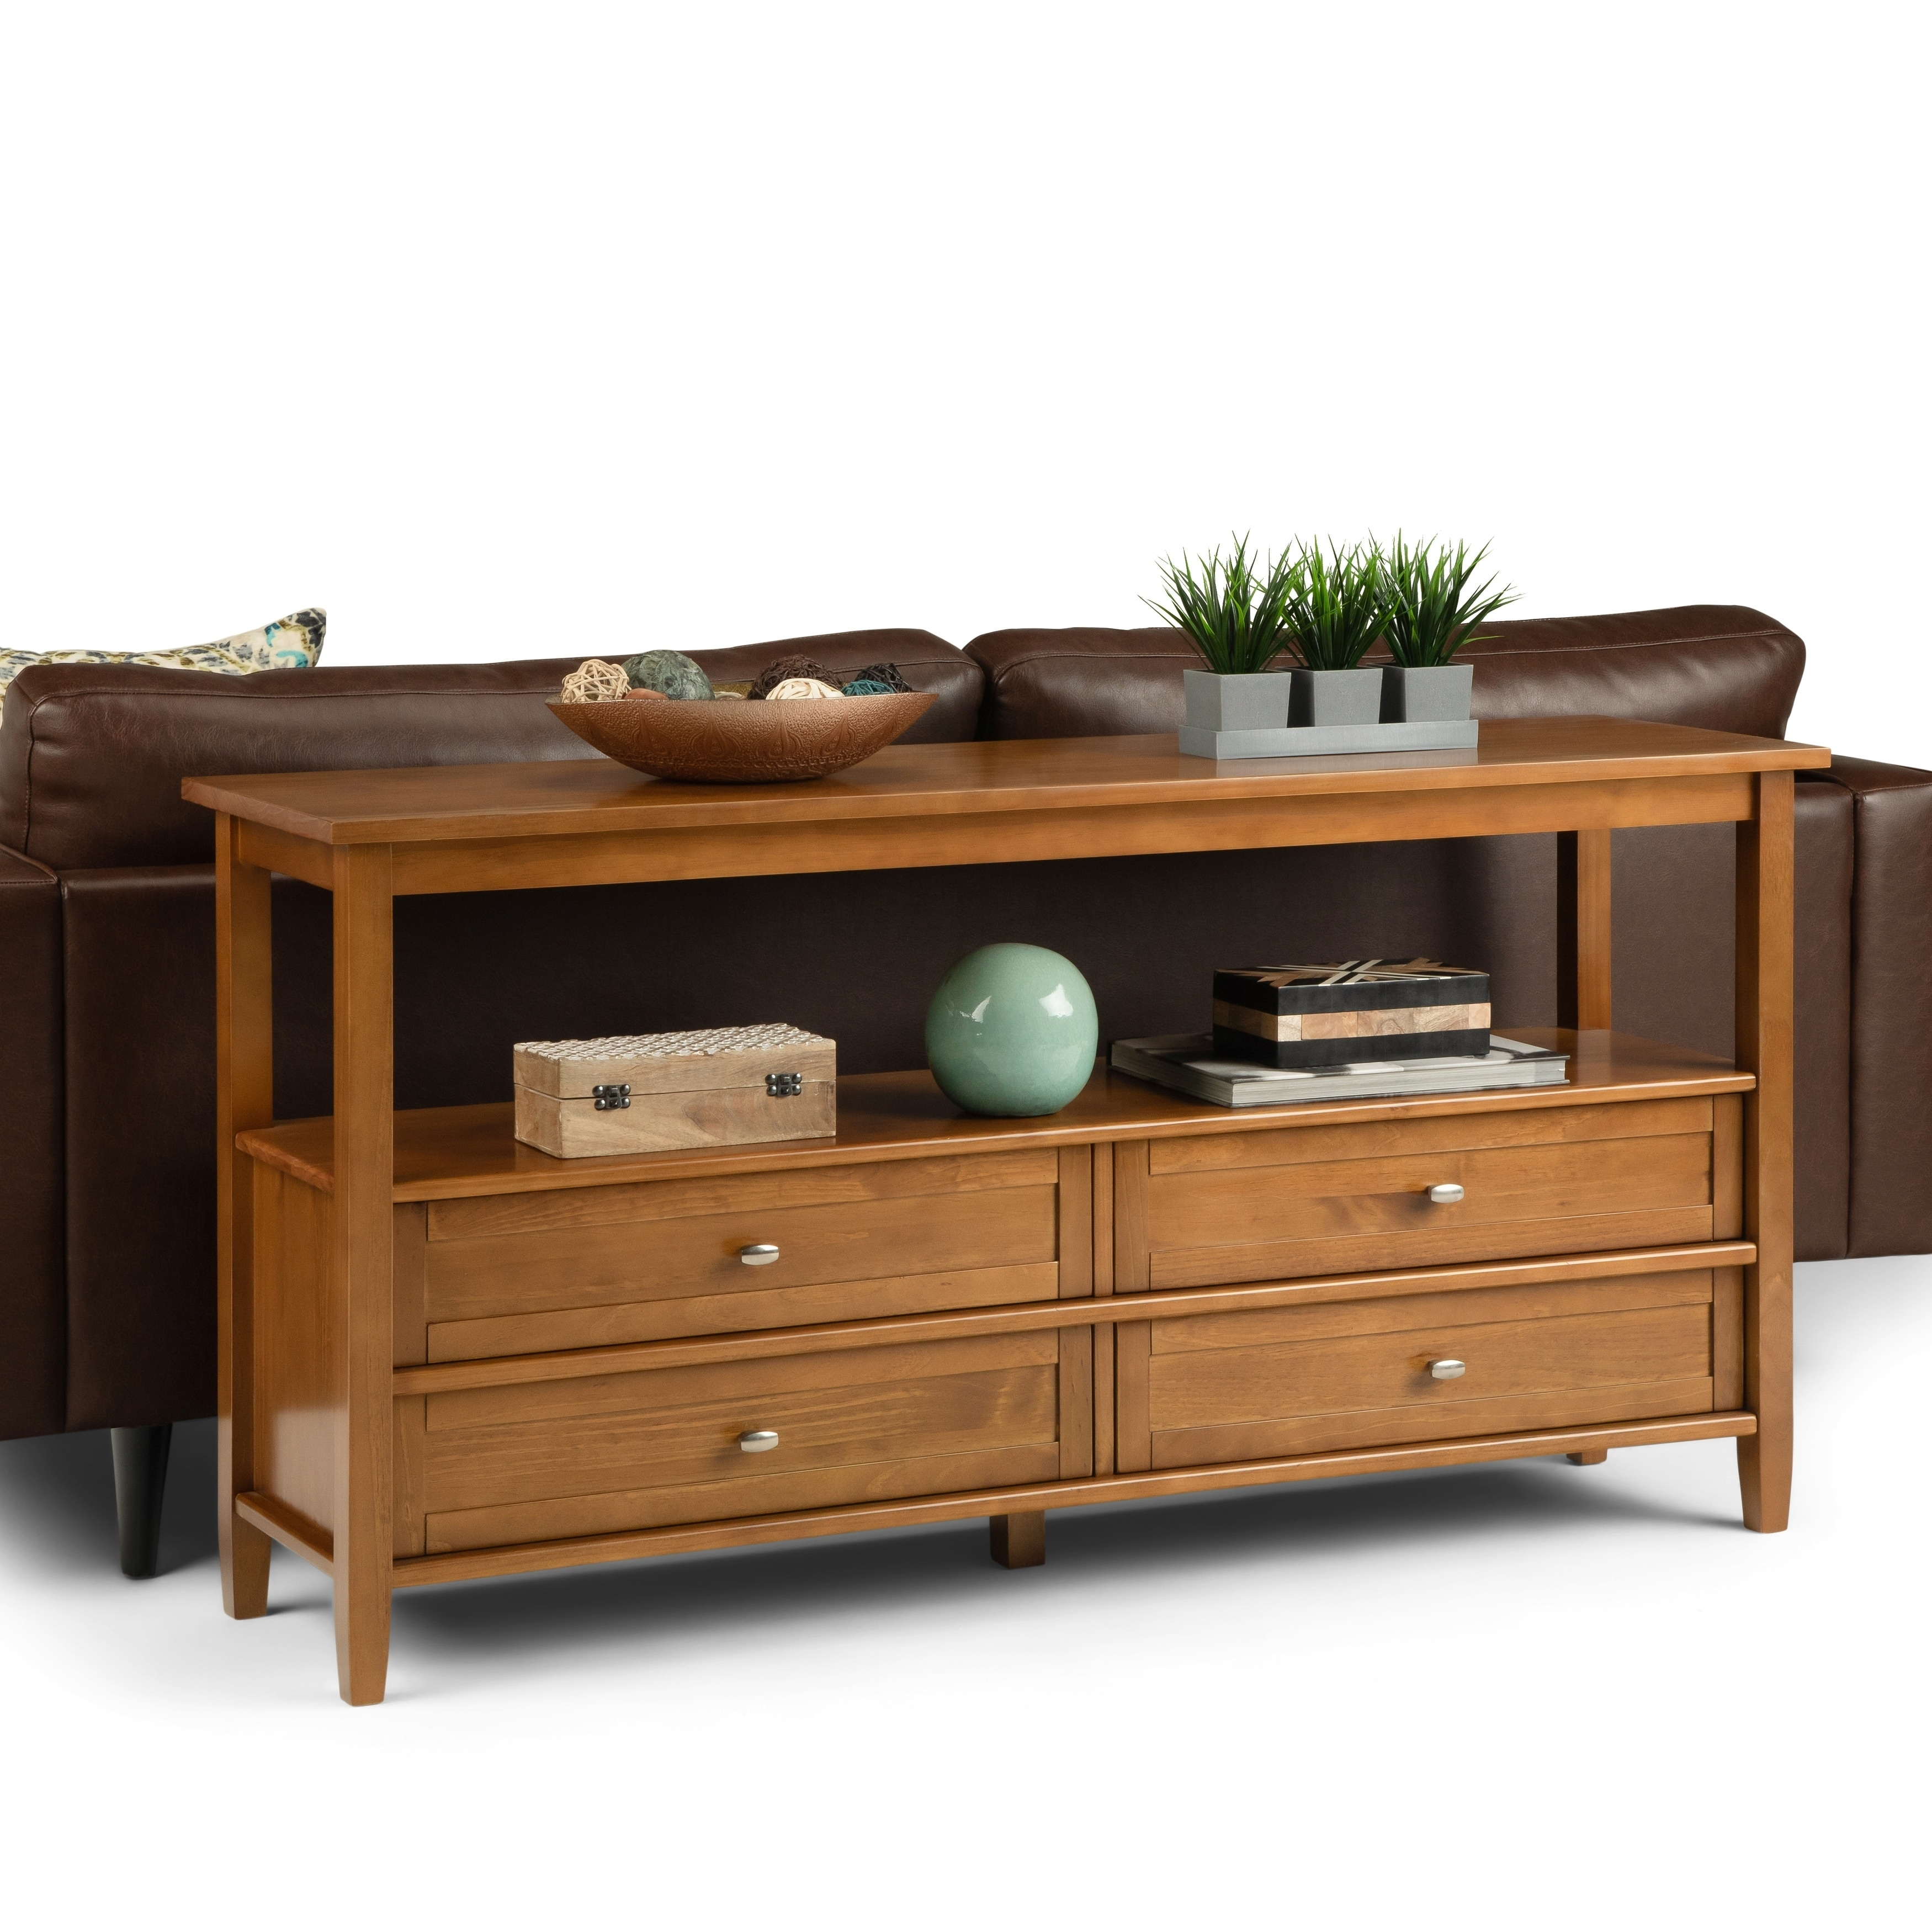 Wyndenhall Norfolk Solid Wood 60 Inch Wide Rustic Wide Console Sofa Table 60 X 16 X 30 60 X 16 X 30 On Sale Overstock 27759185